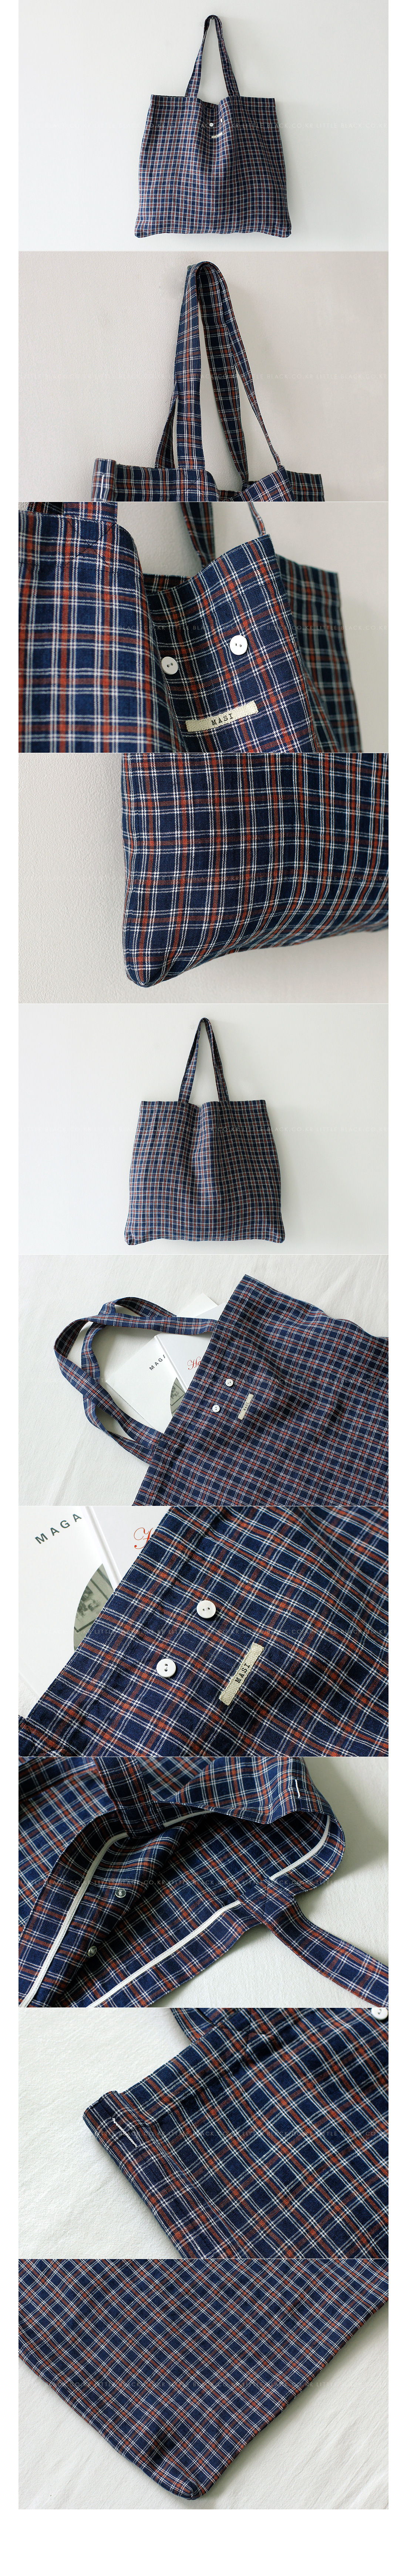 Plaid Linen Tote Bag|